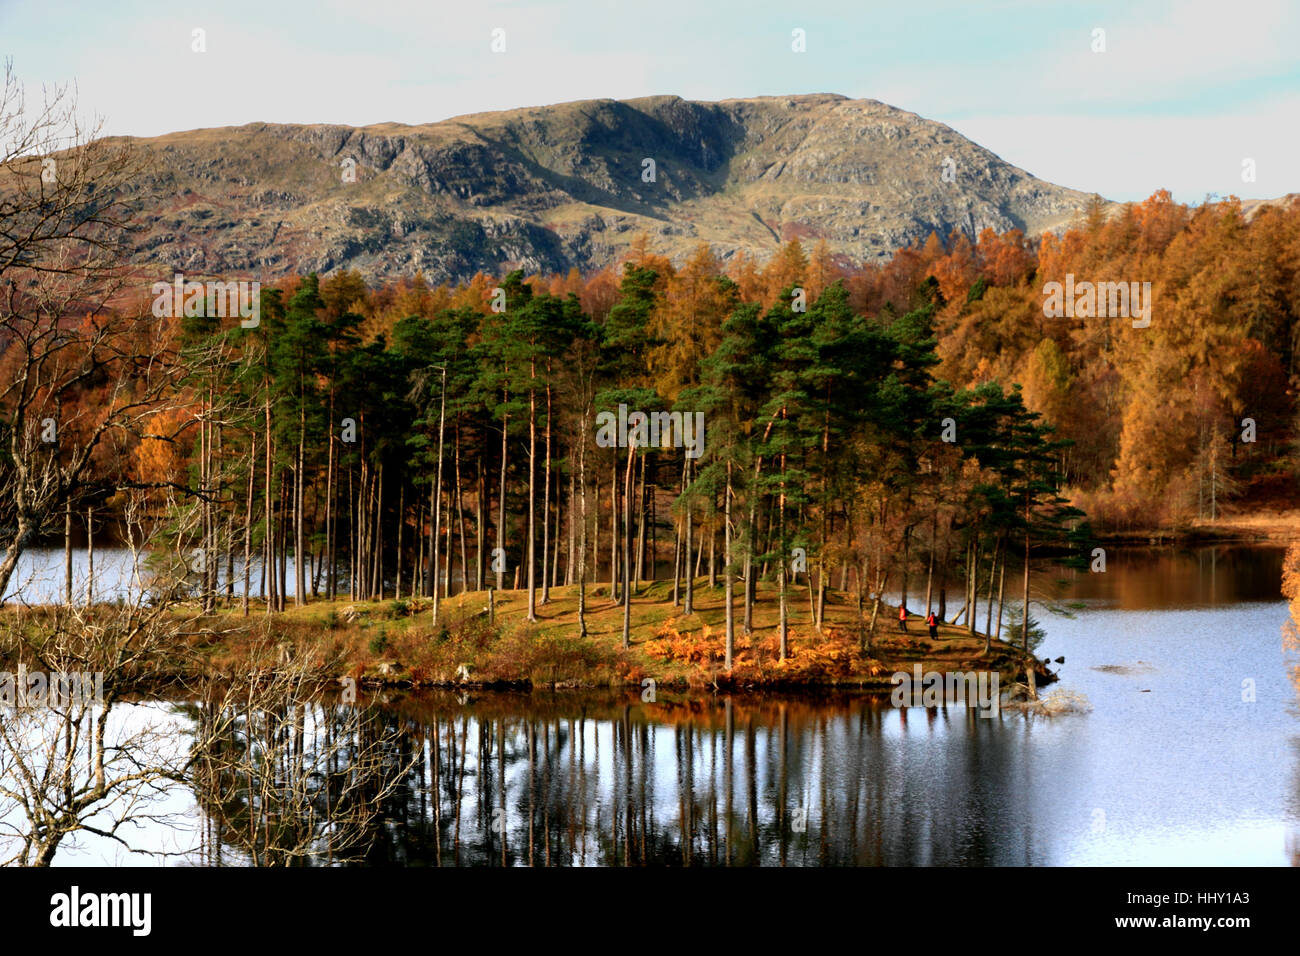 A quiet autumnal day at Tarn Howes, Cumbria. - Stock Image